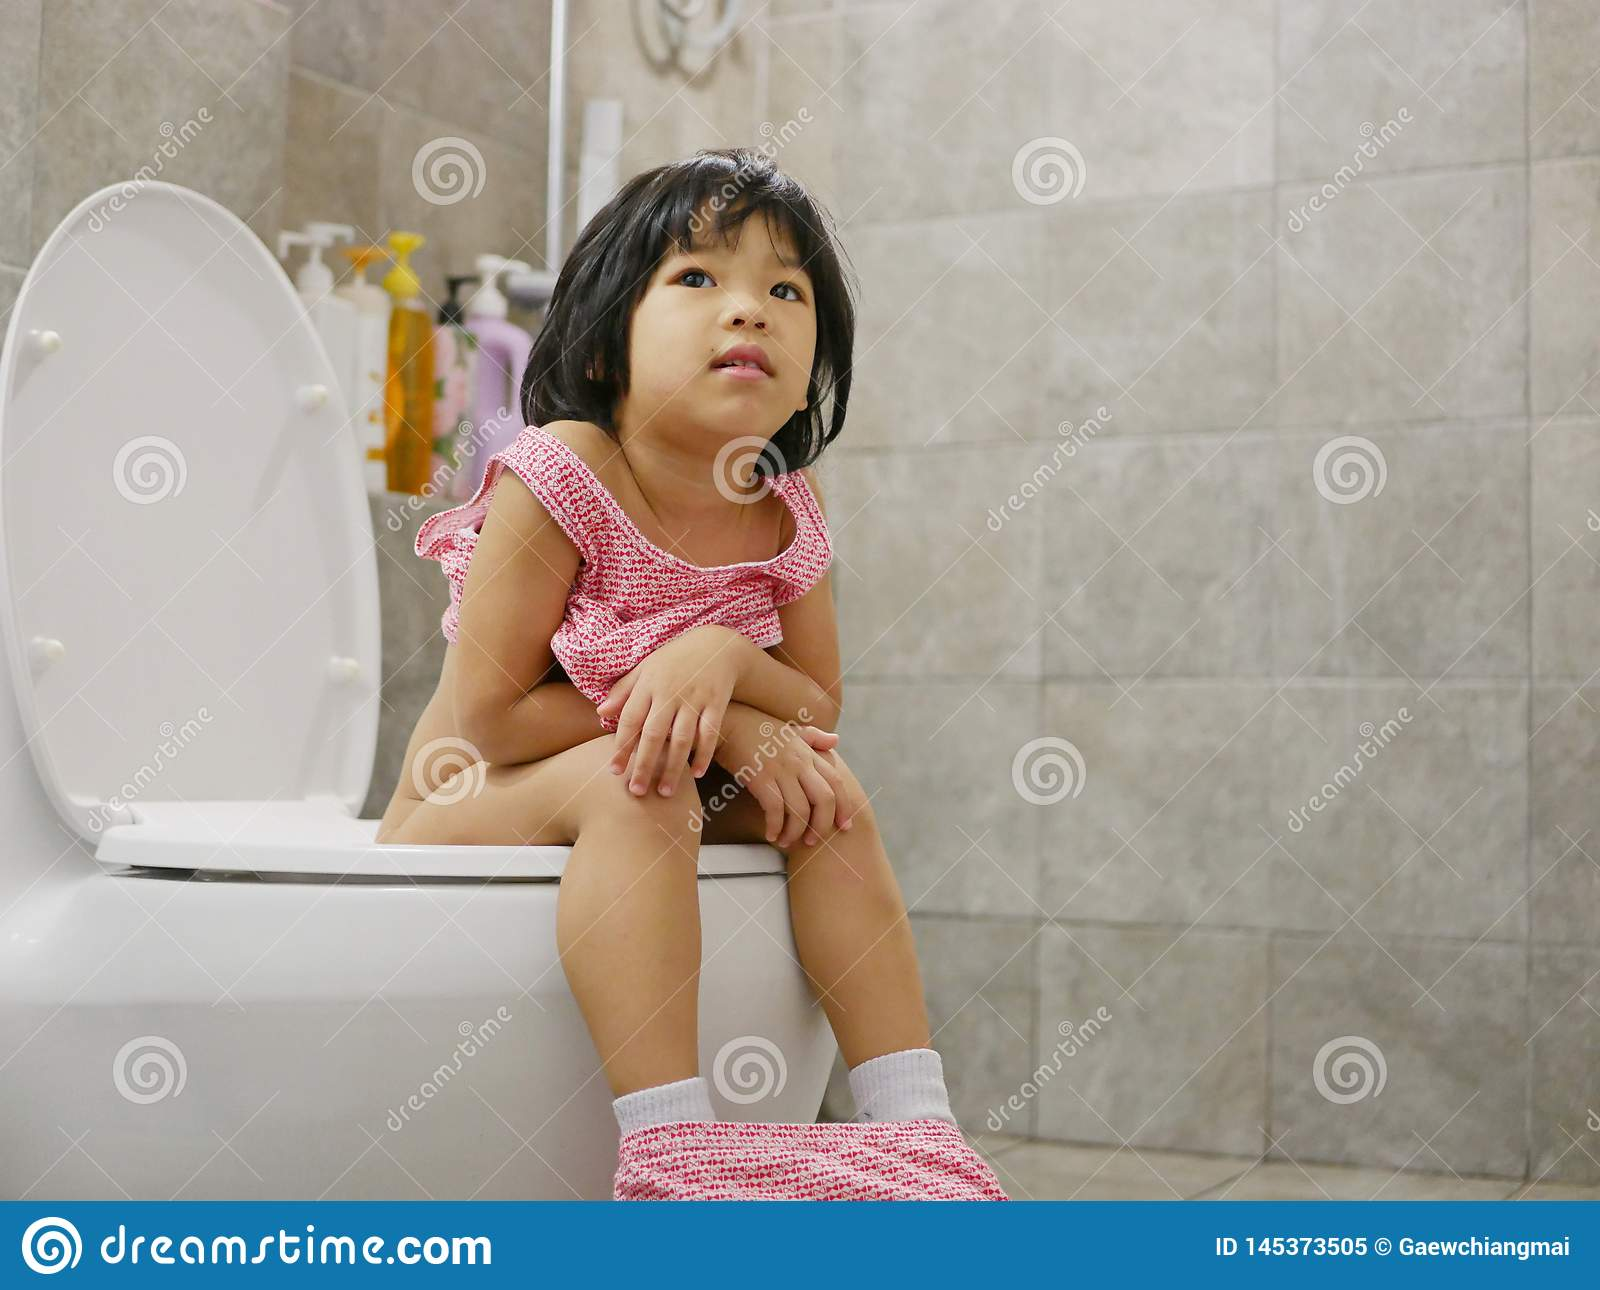 Little Asian baby girl being happy to be able to get on and use adult size toilet bow by herself successfully